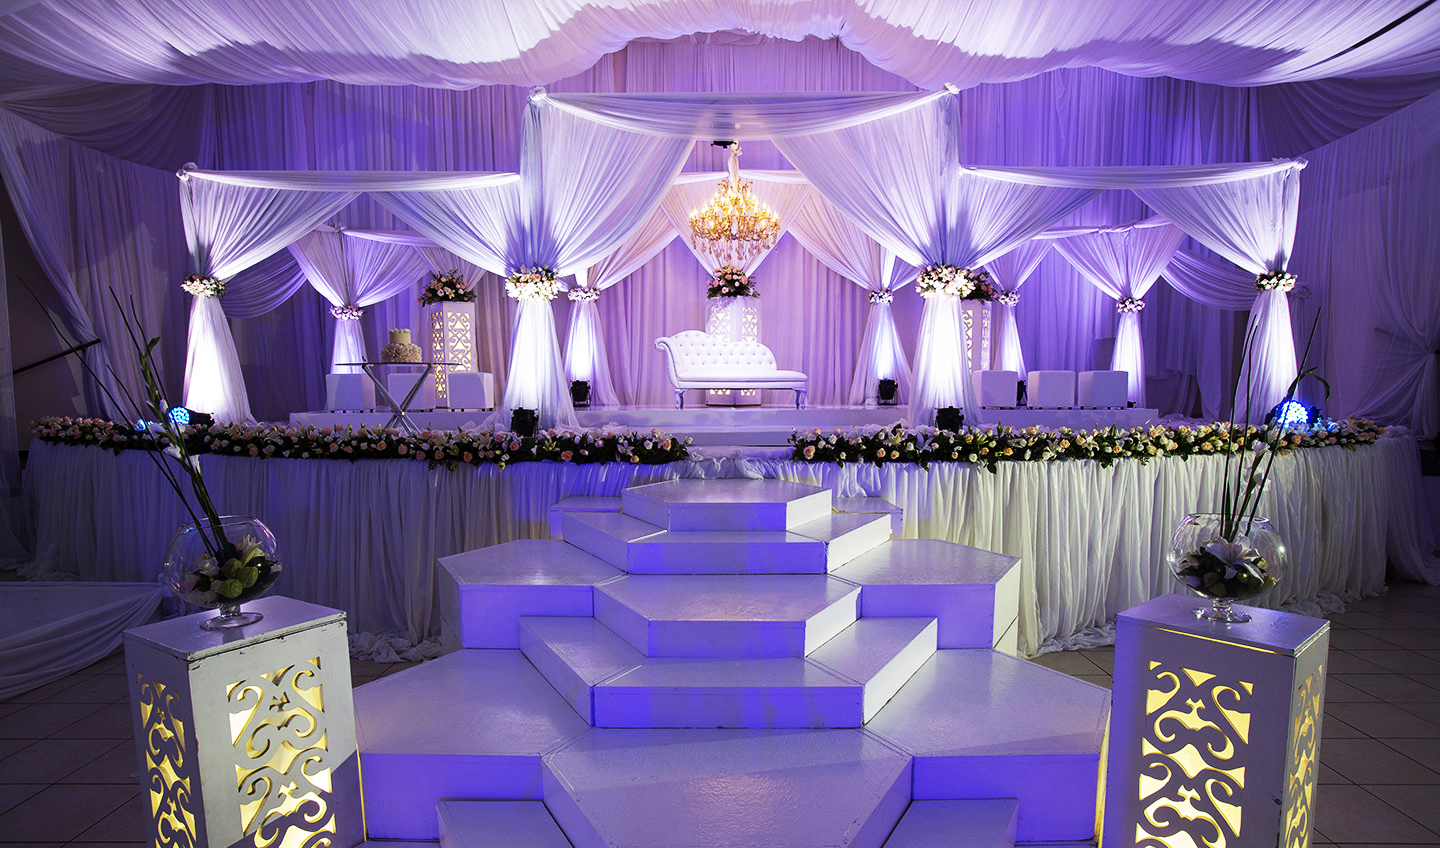 Koogan Pillay: Wedding Decor Durban